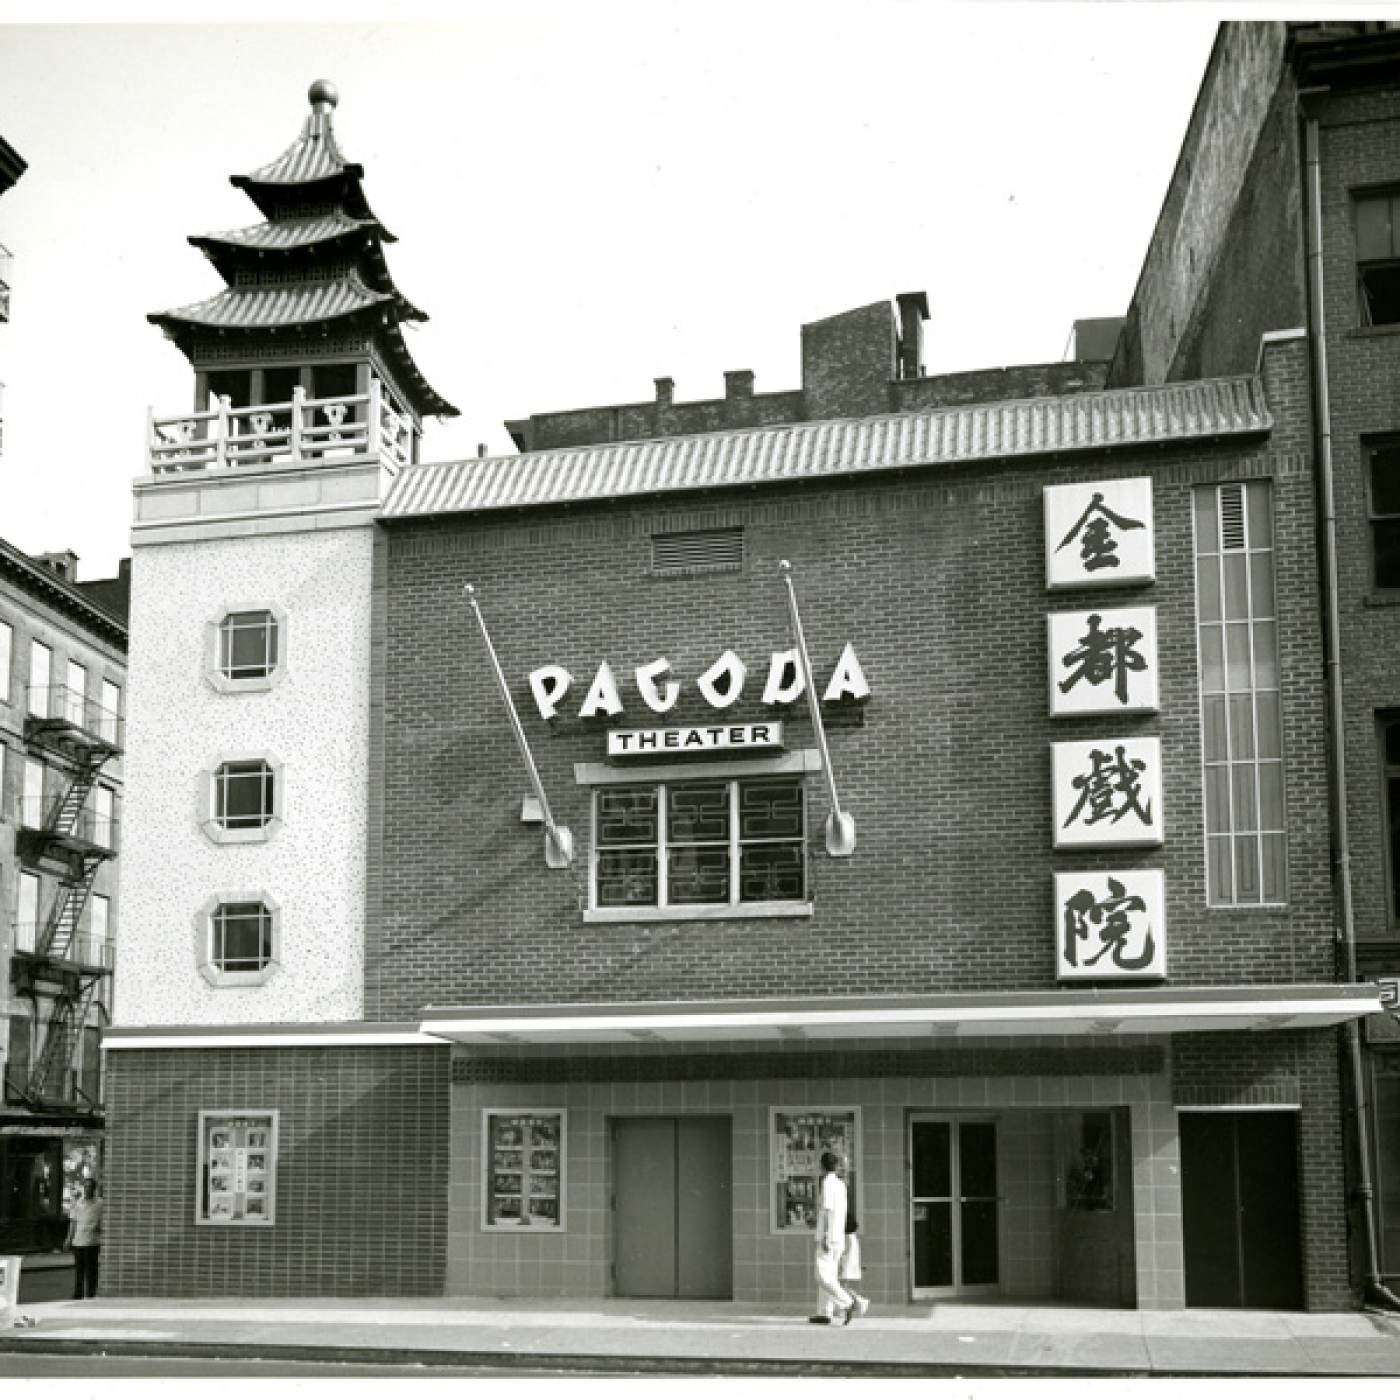 11 July 2019 Posted. The Pagoda Theater, 11 East Broadway, 1964. Courtesy of the Lee Family, Museum of Chinese in America (MOCA) Collection. 金都戏院,东百老汇大道11号,1964年,李锦沛家族捐赠,美国华人博物馆(MOCA)馆藏